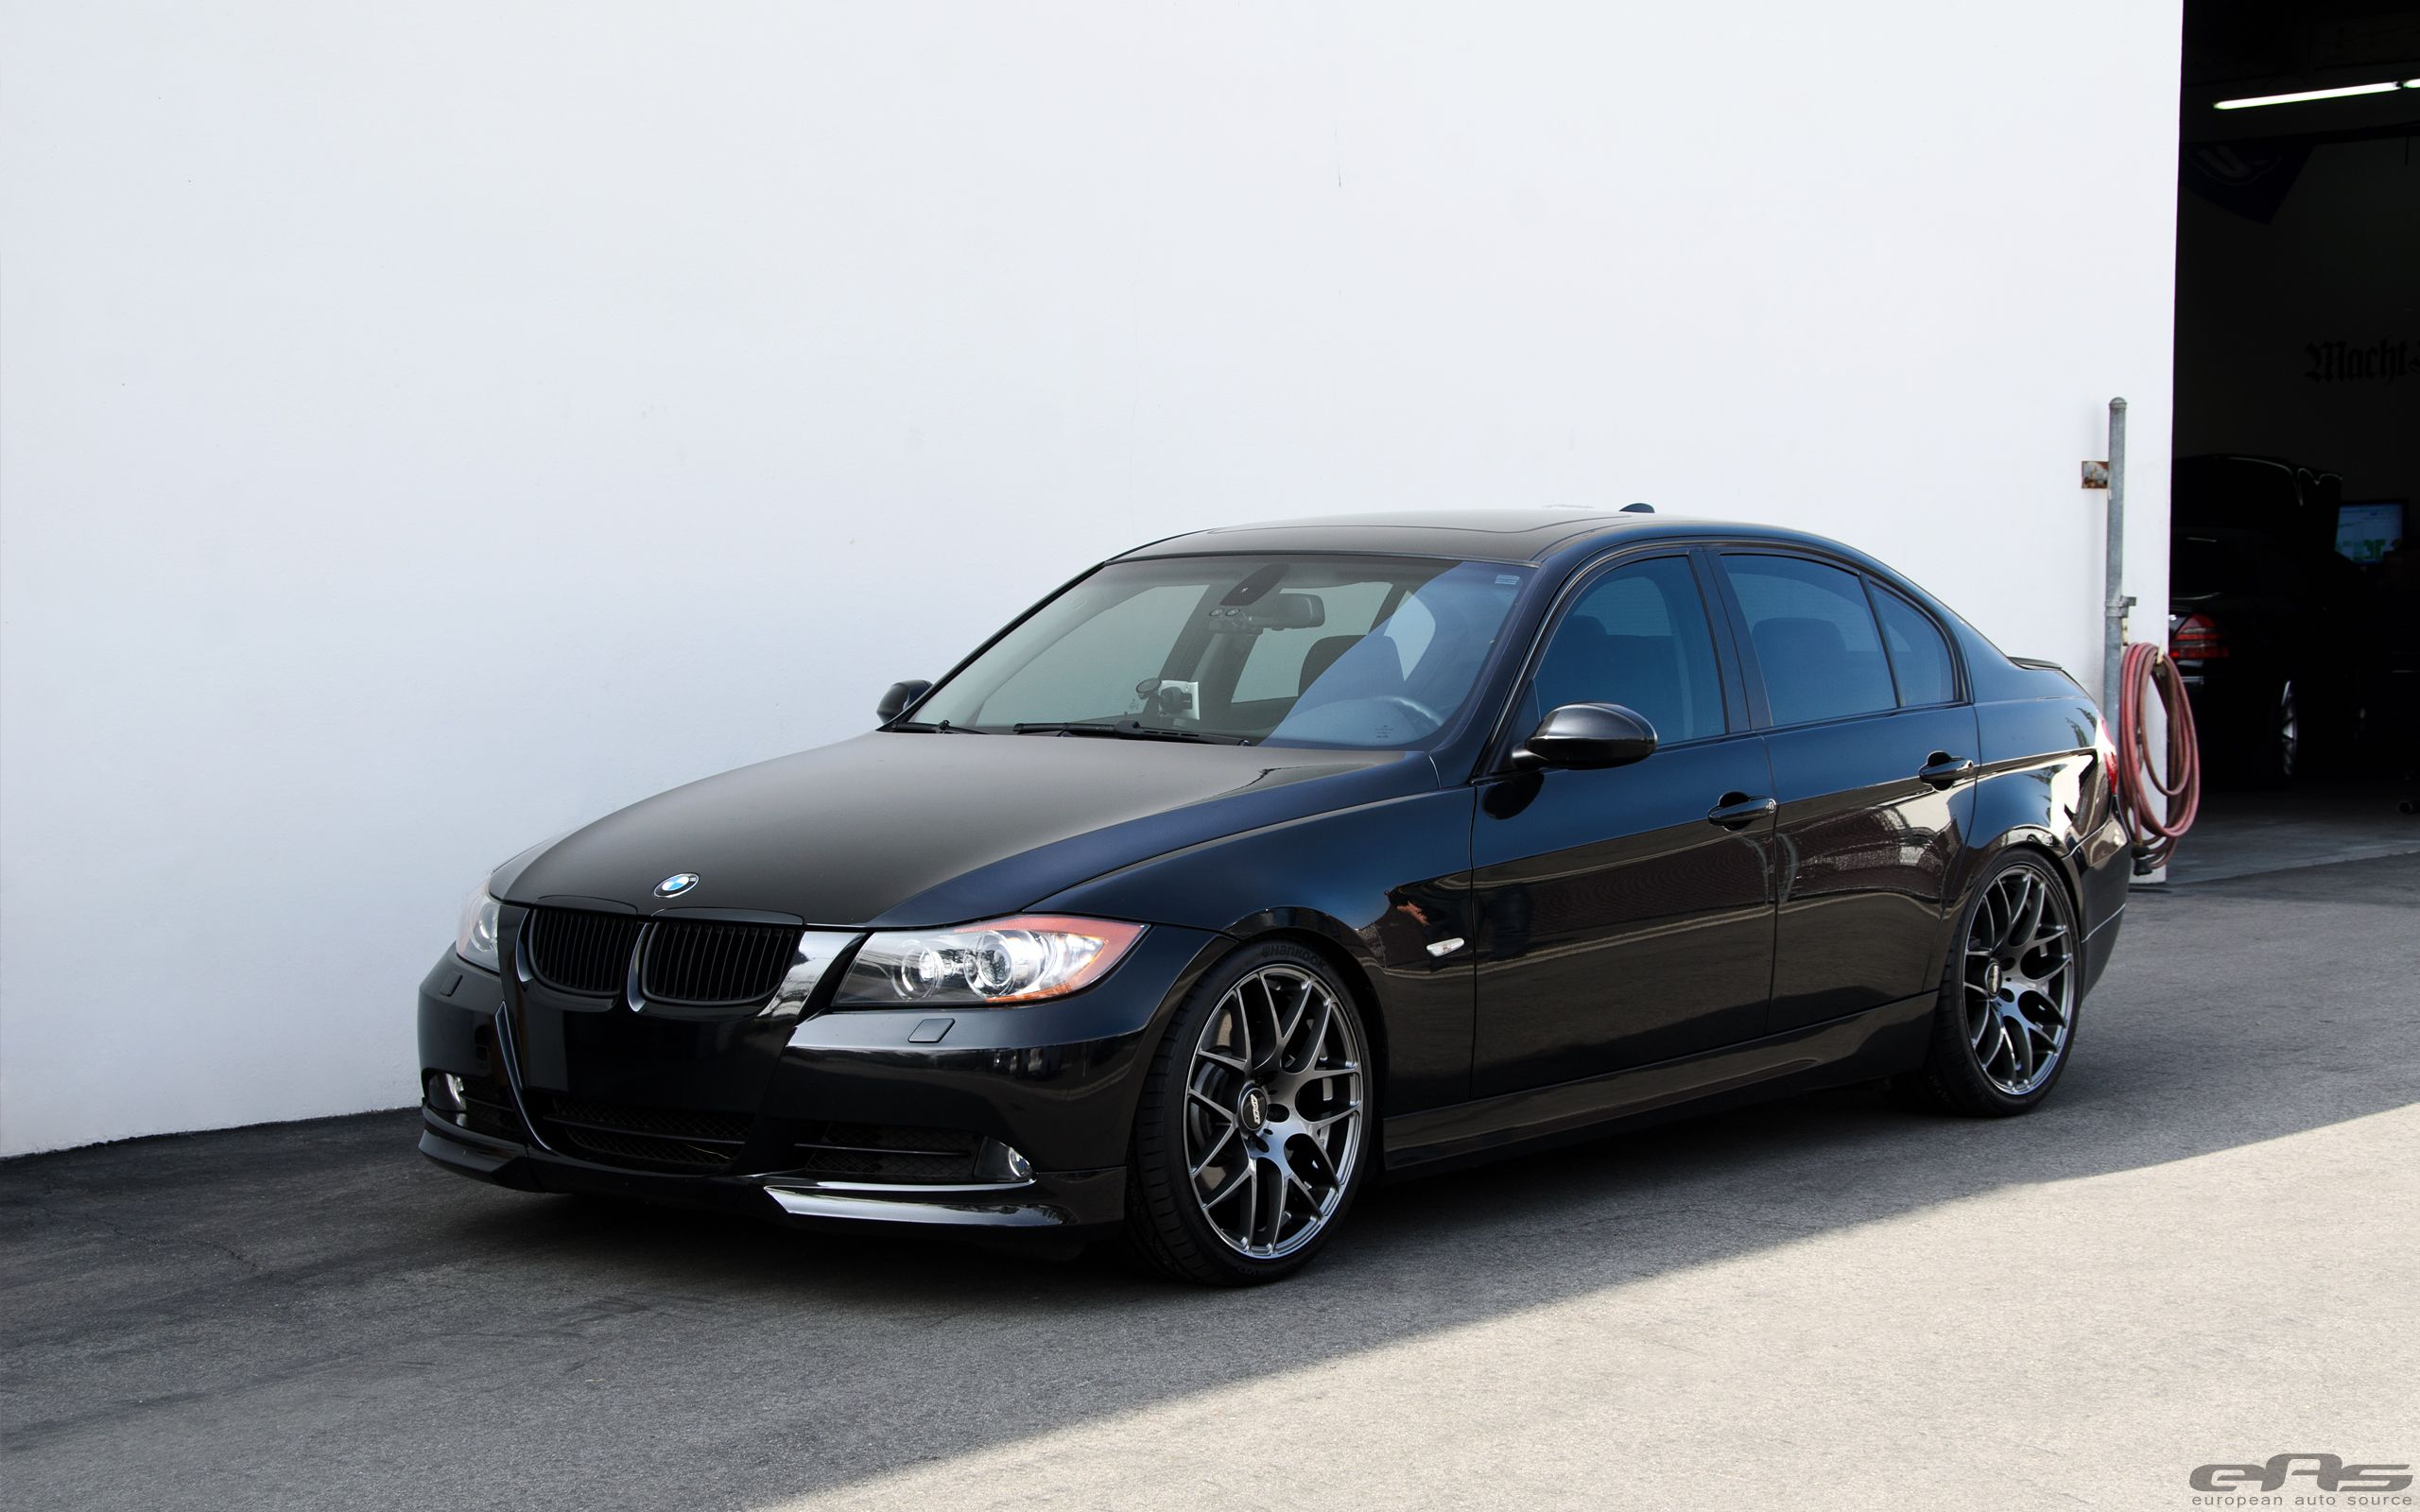 Jet Black Bmw E90 335i Looks Clean With Aftermarket Wheels Dengan